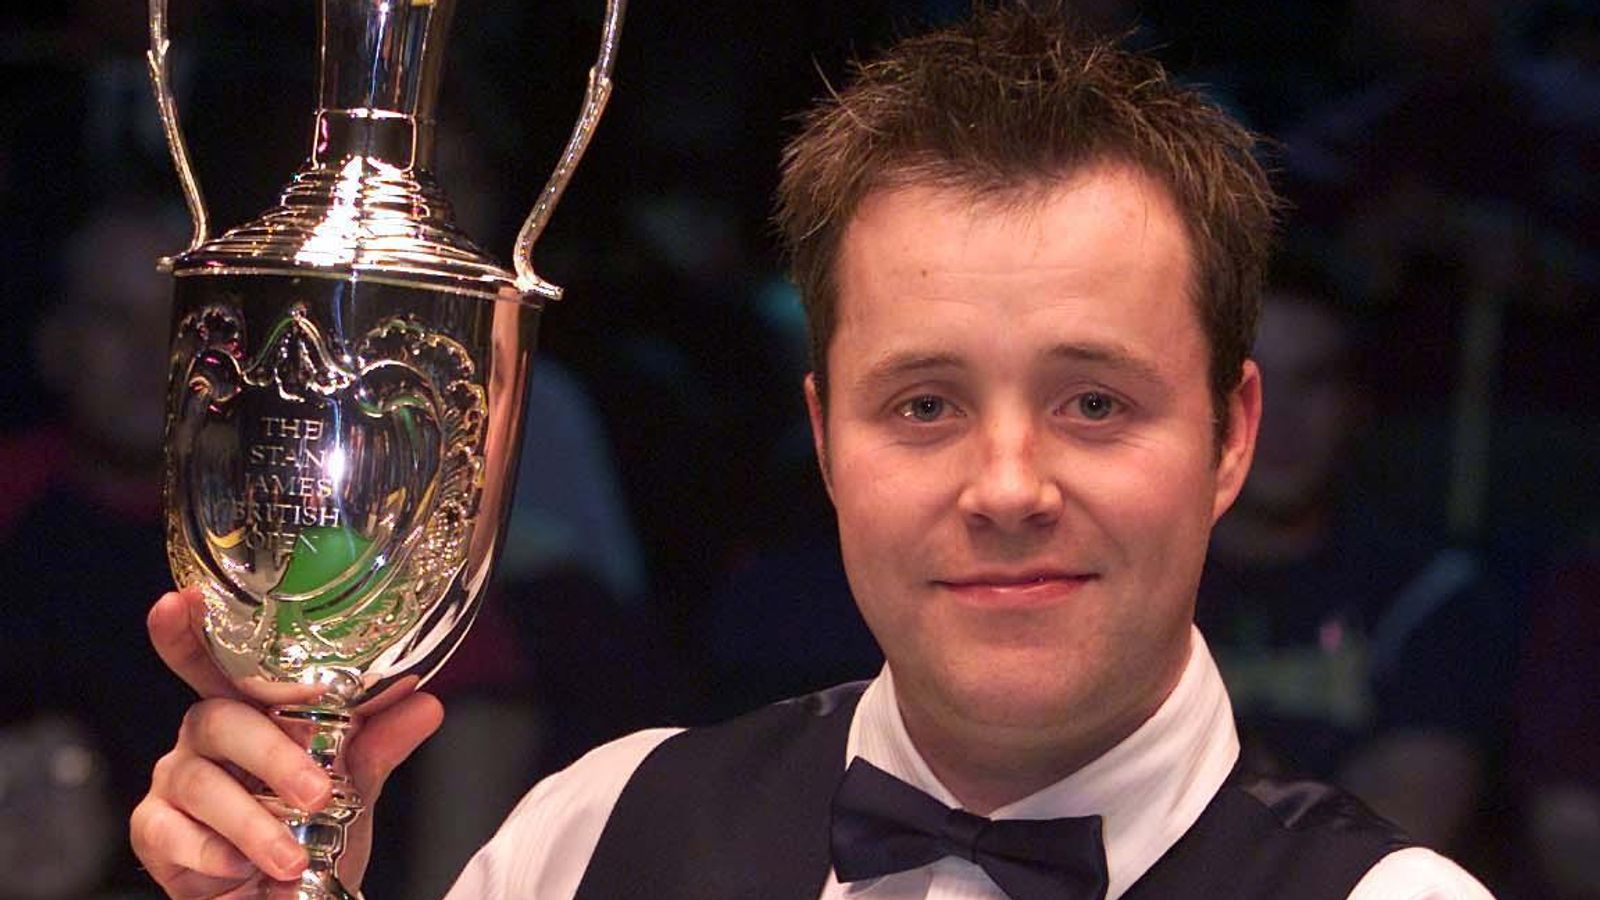 The British Open returns to the snooker calendar for the first time in 17 years